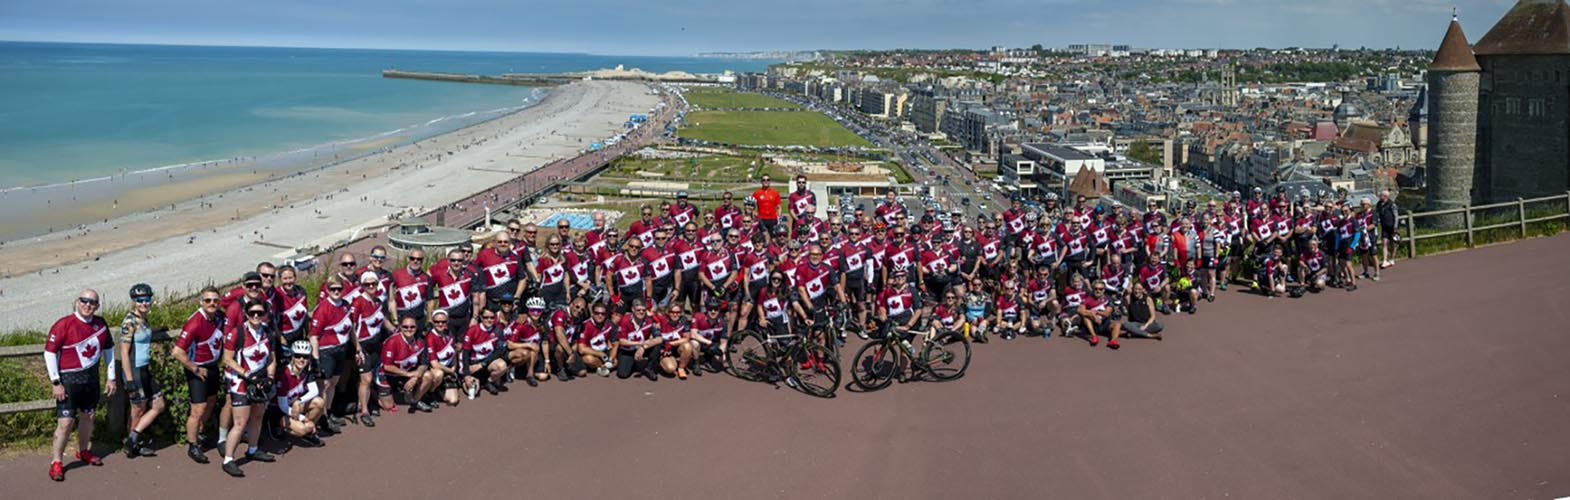 A panoramic view of the Wounded Warriors Canada's Battlefield Bike Ride 2019 team on the beach near the town of Dieppe, France. Photo: John's Photography, Sooke, BC